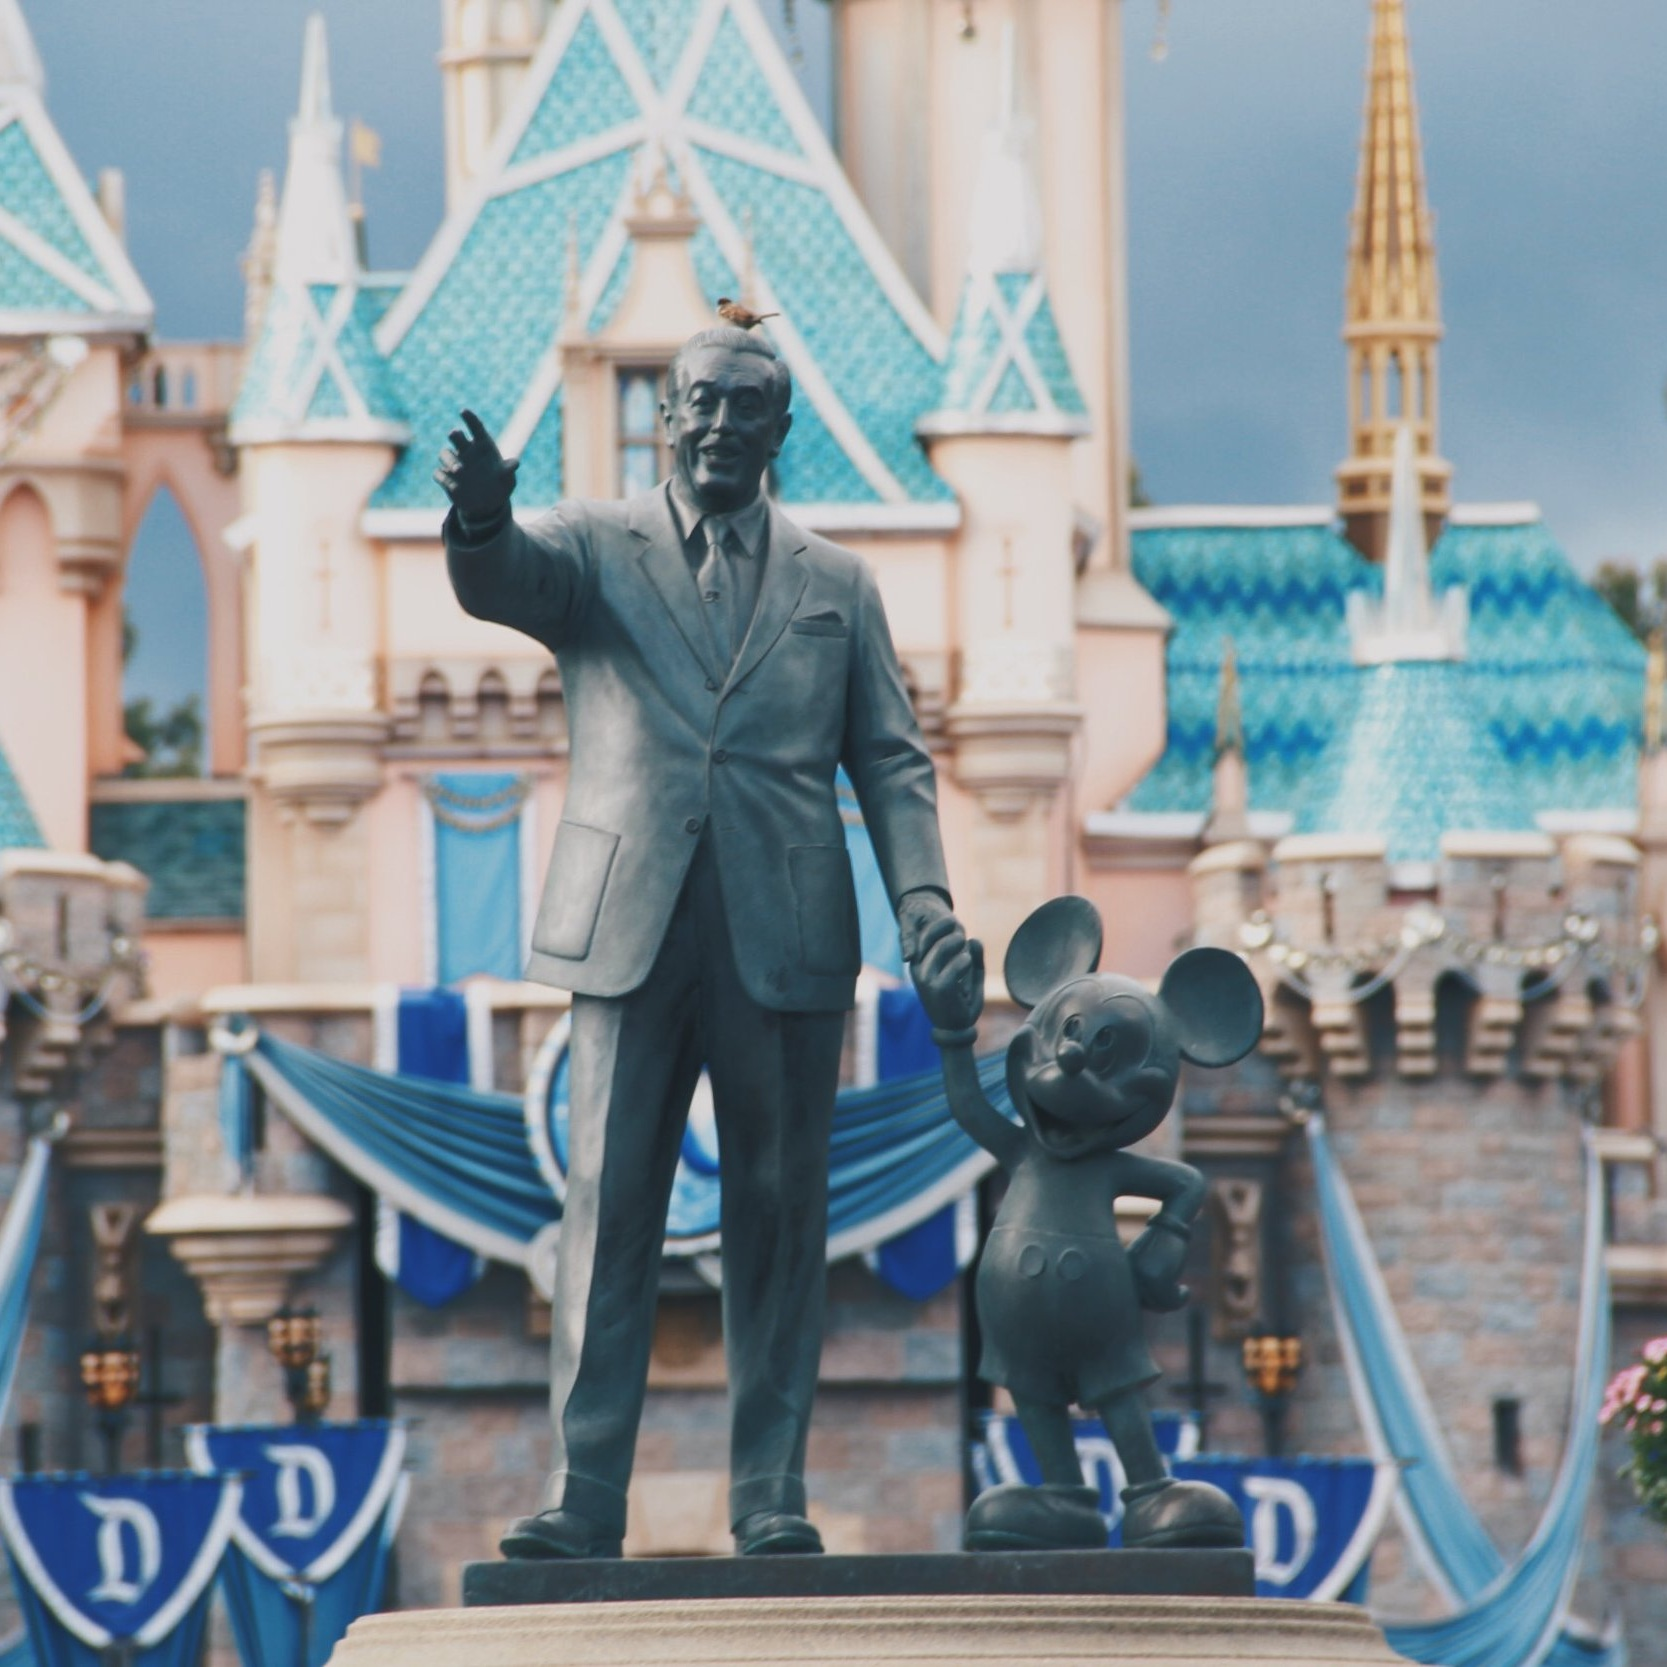 Disney Imagineering - We collaborated with Disney Imagineering's finance department in order to uncover new visual communication opportunities that could better distill and disseminate their global investment and